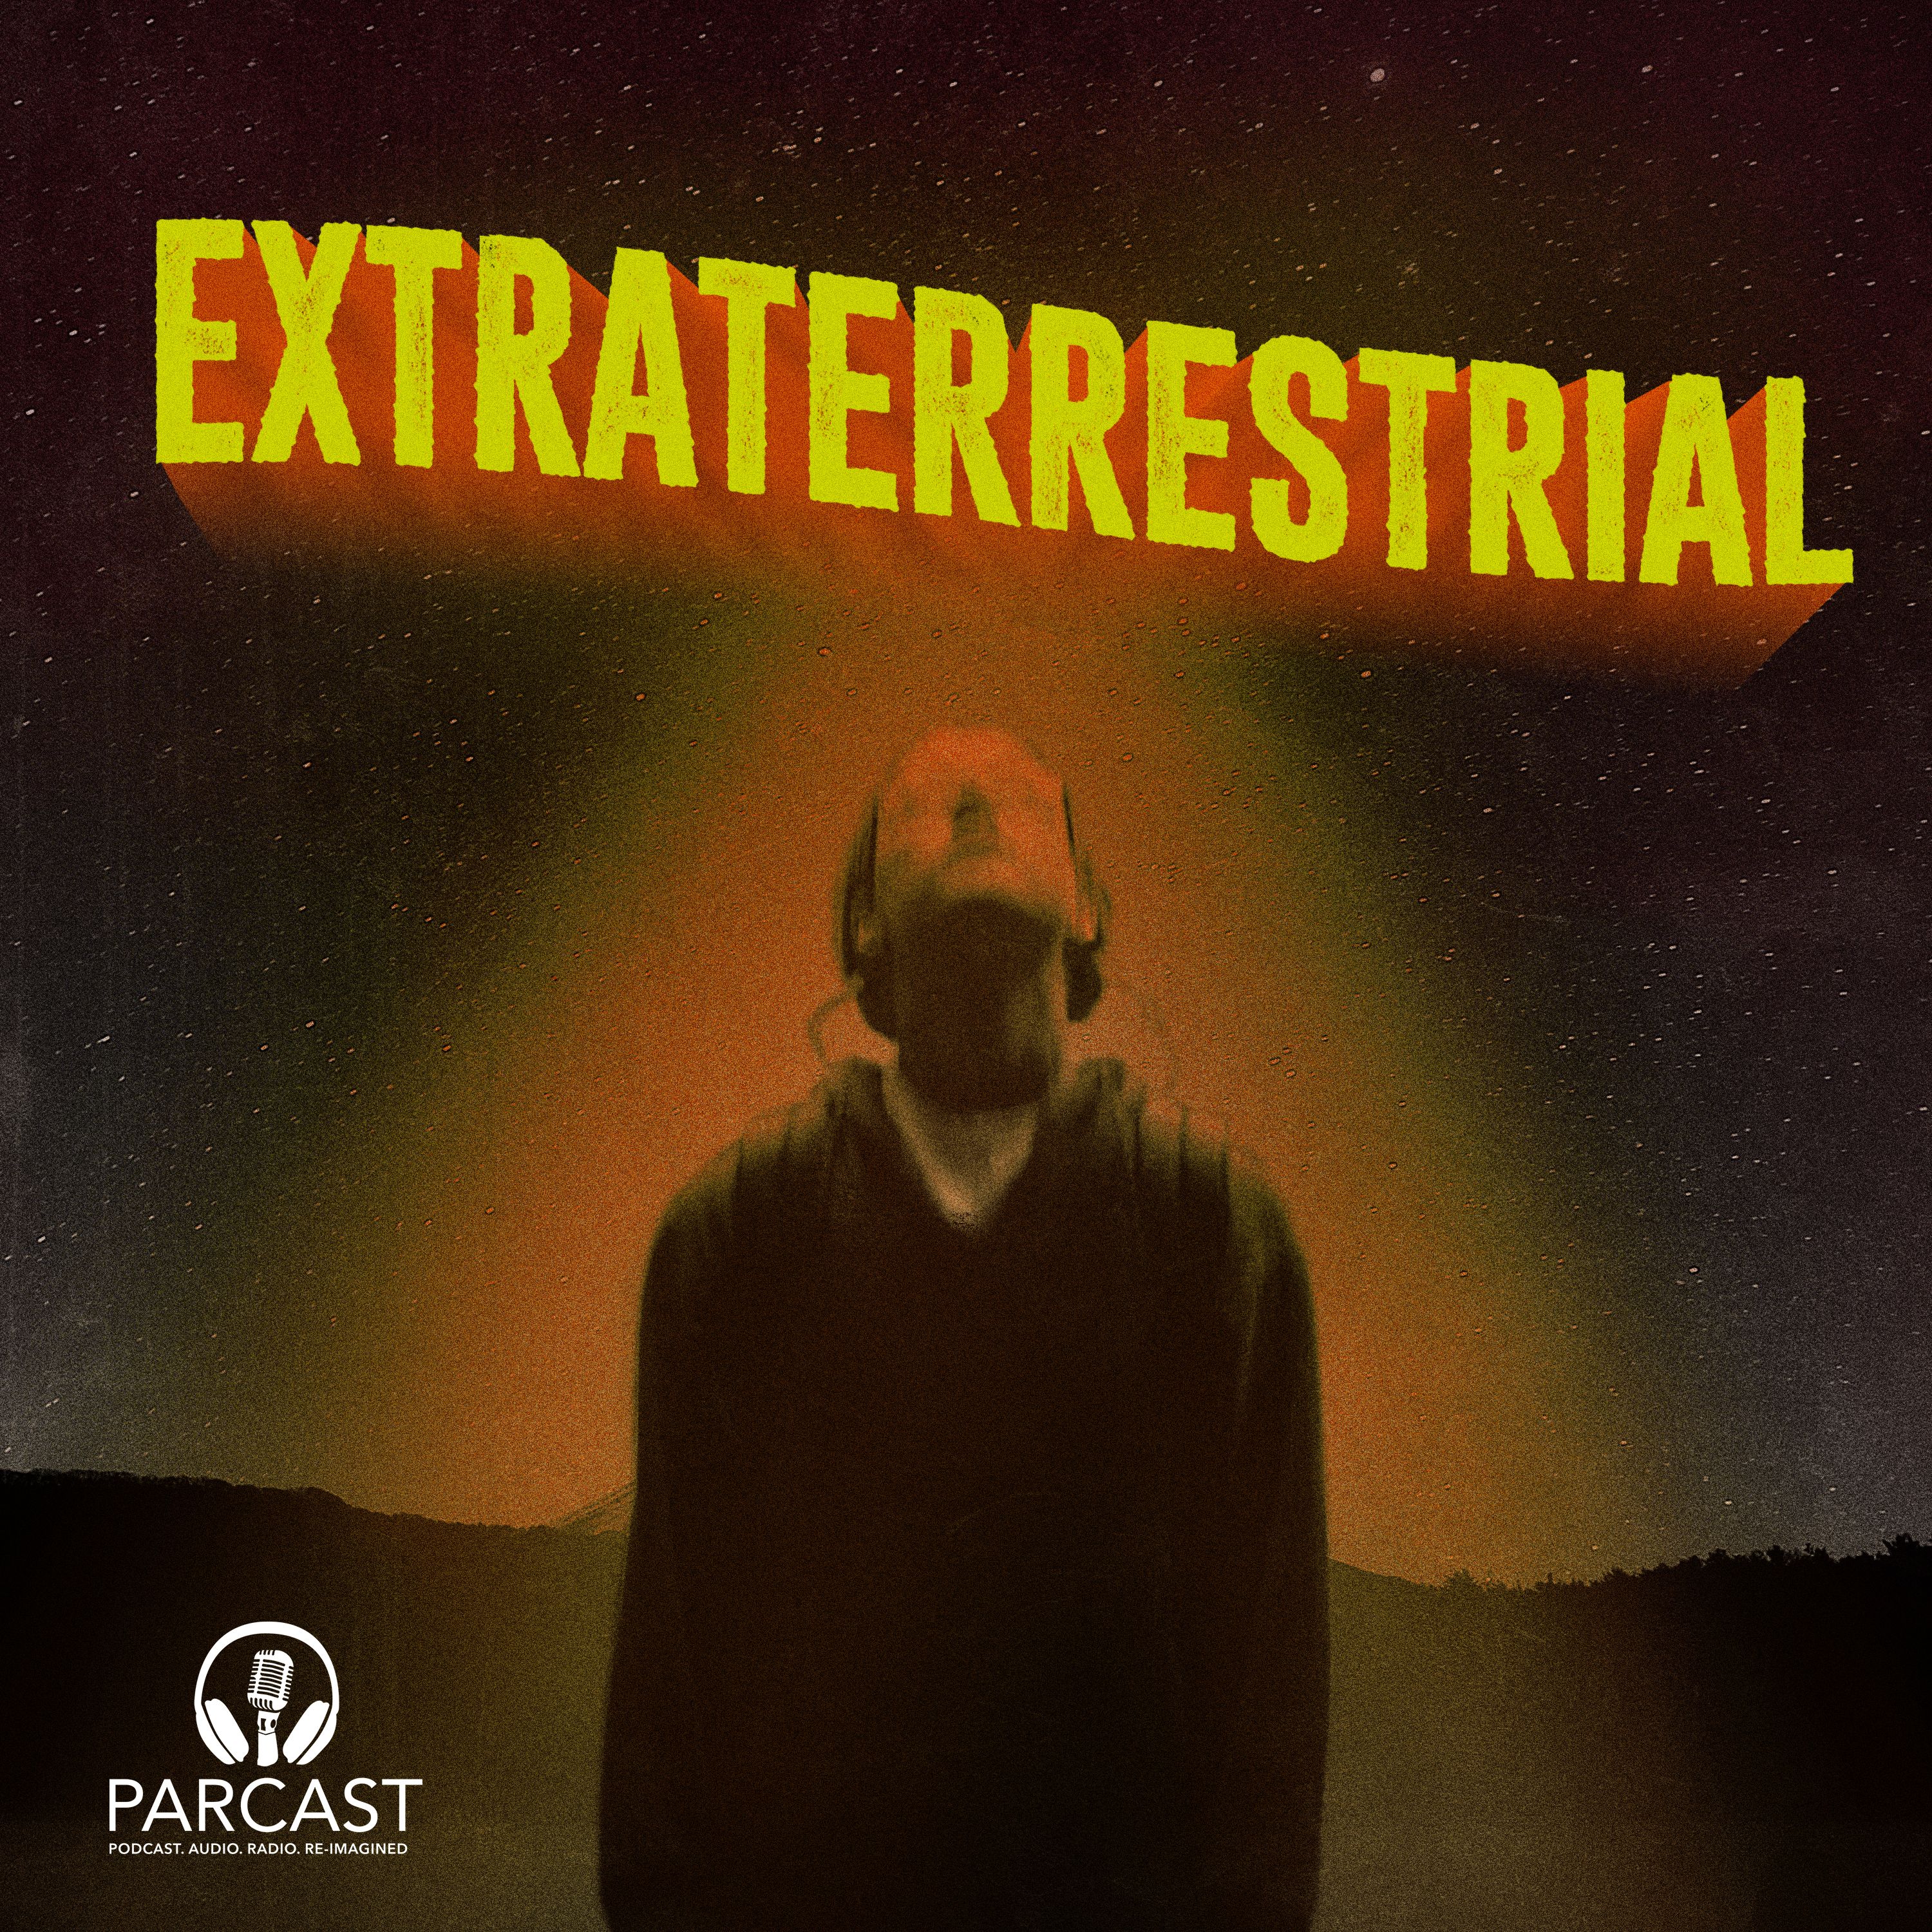 Extraterrestrial on Apple Podcasts